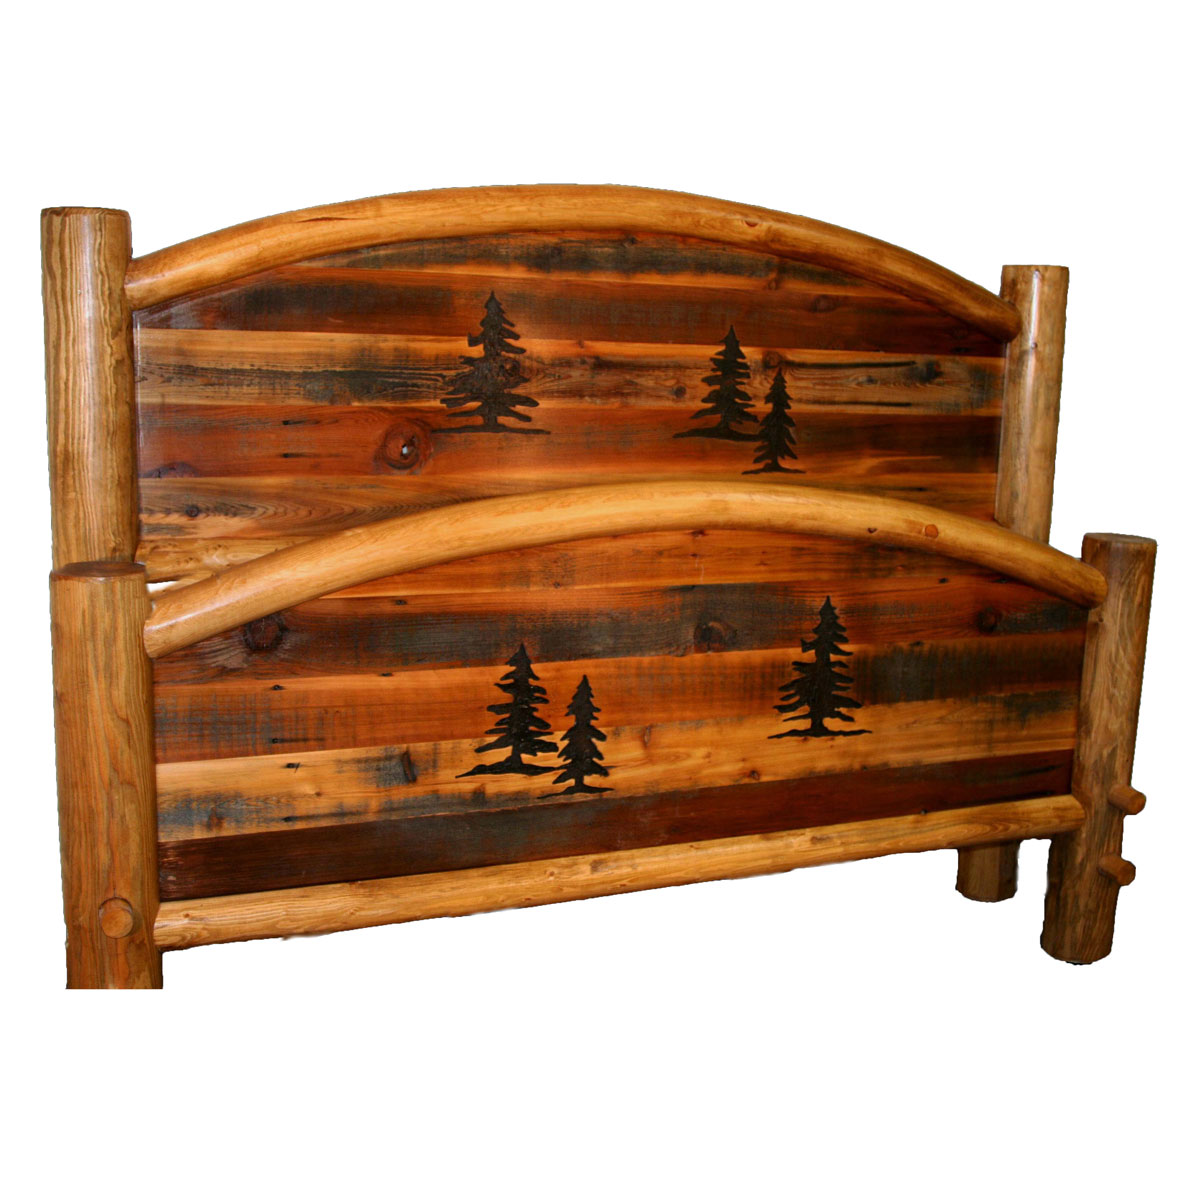 Black Forest Decor Barnwood arched bed with tree carvings...